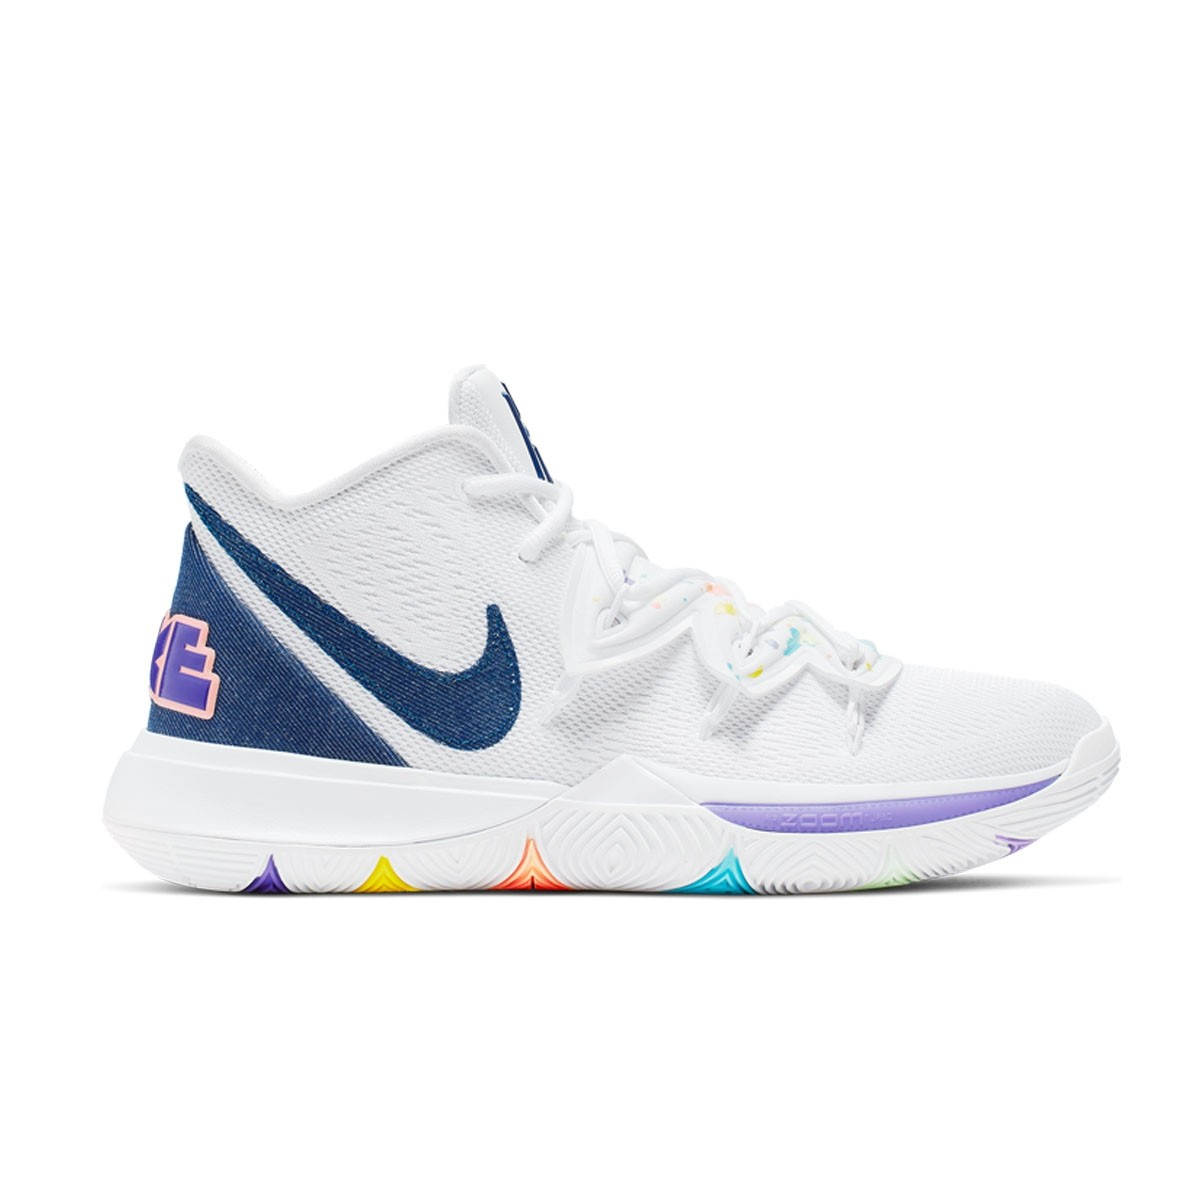 Nike Kyrie 5 'Have a Nike day'